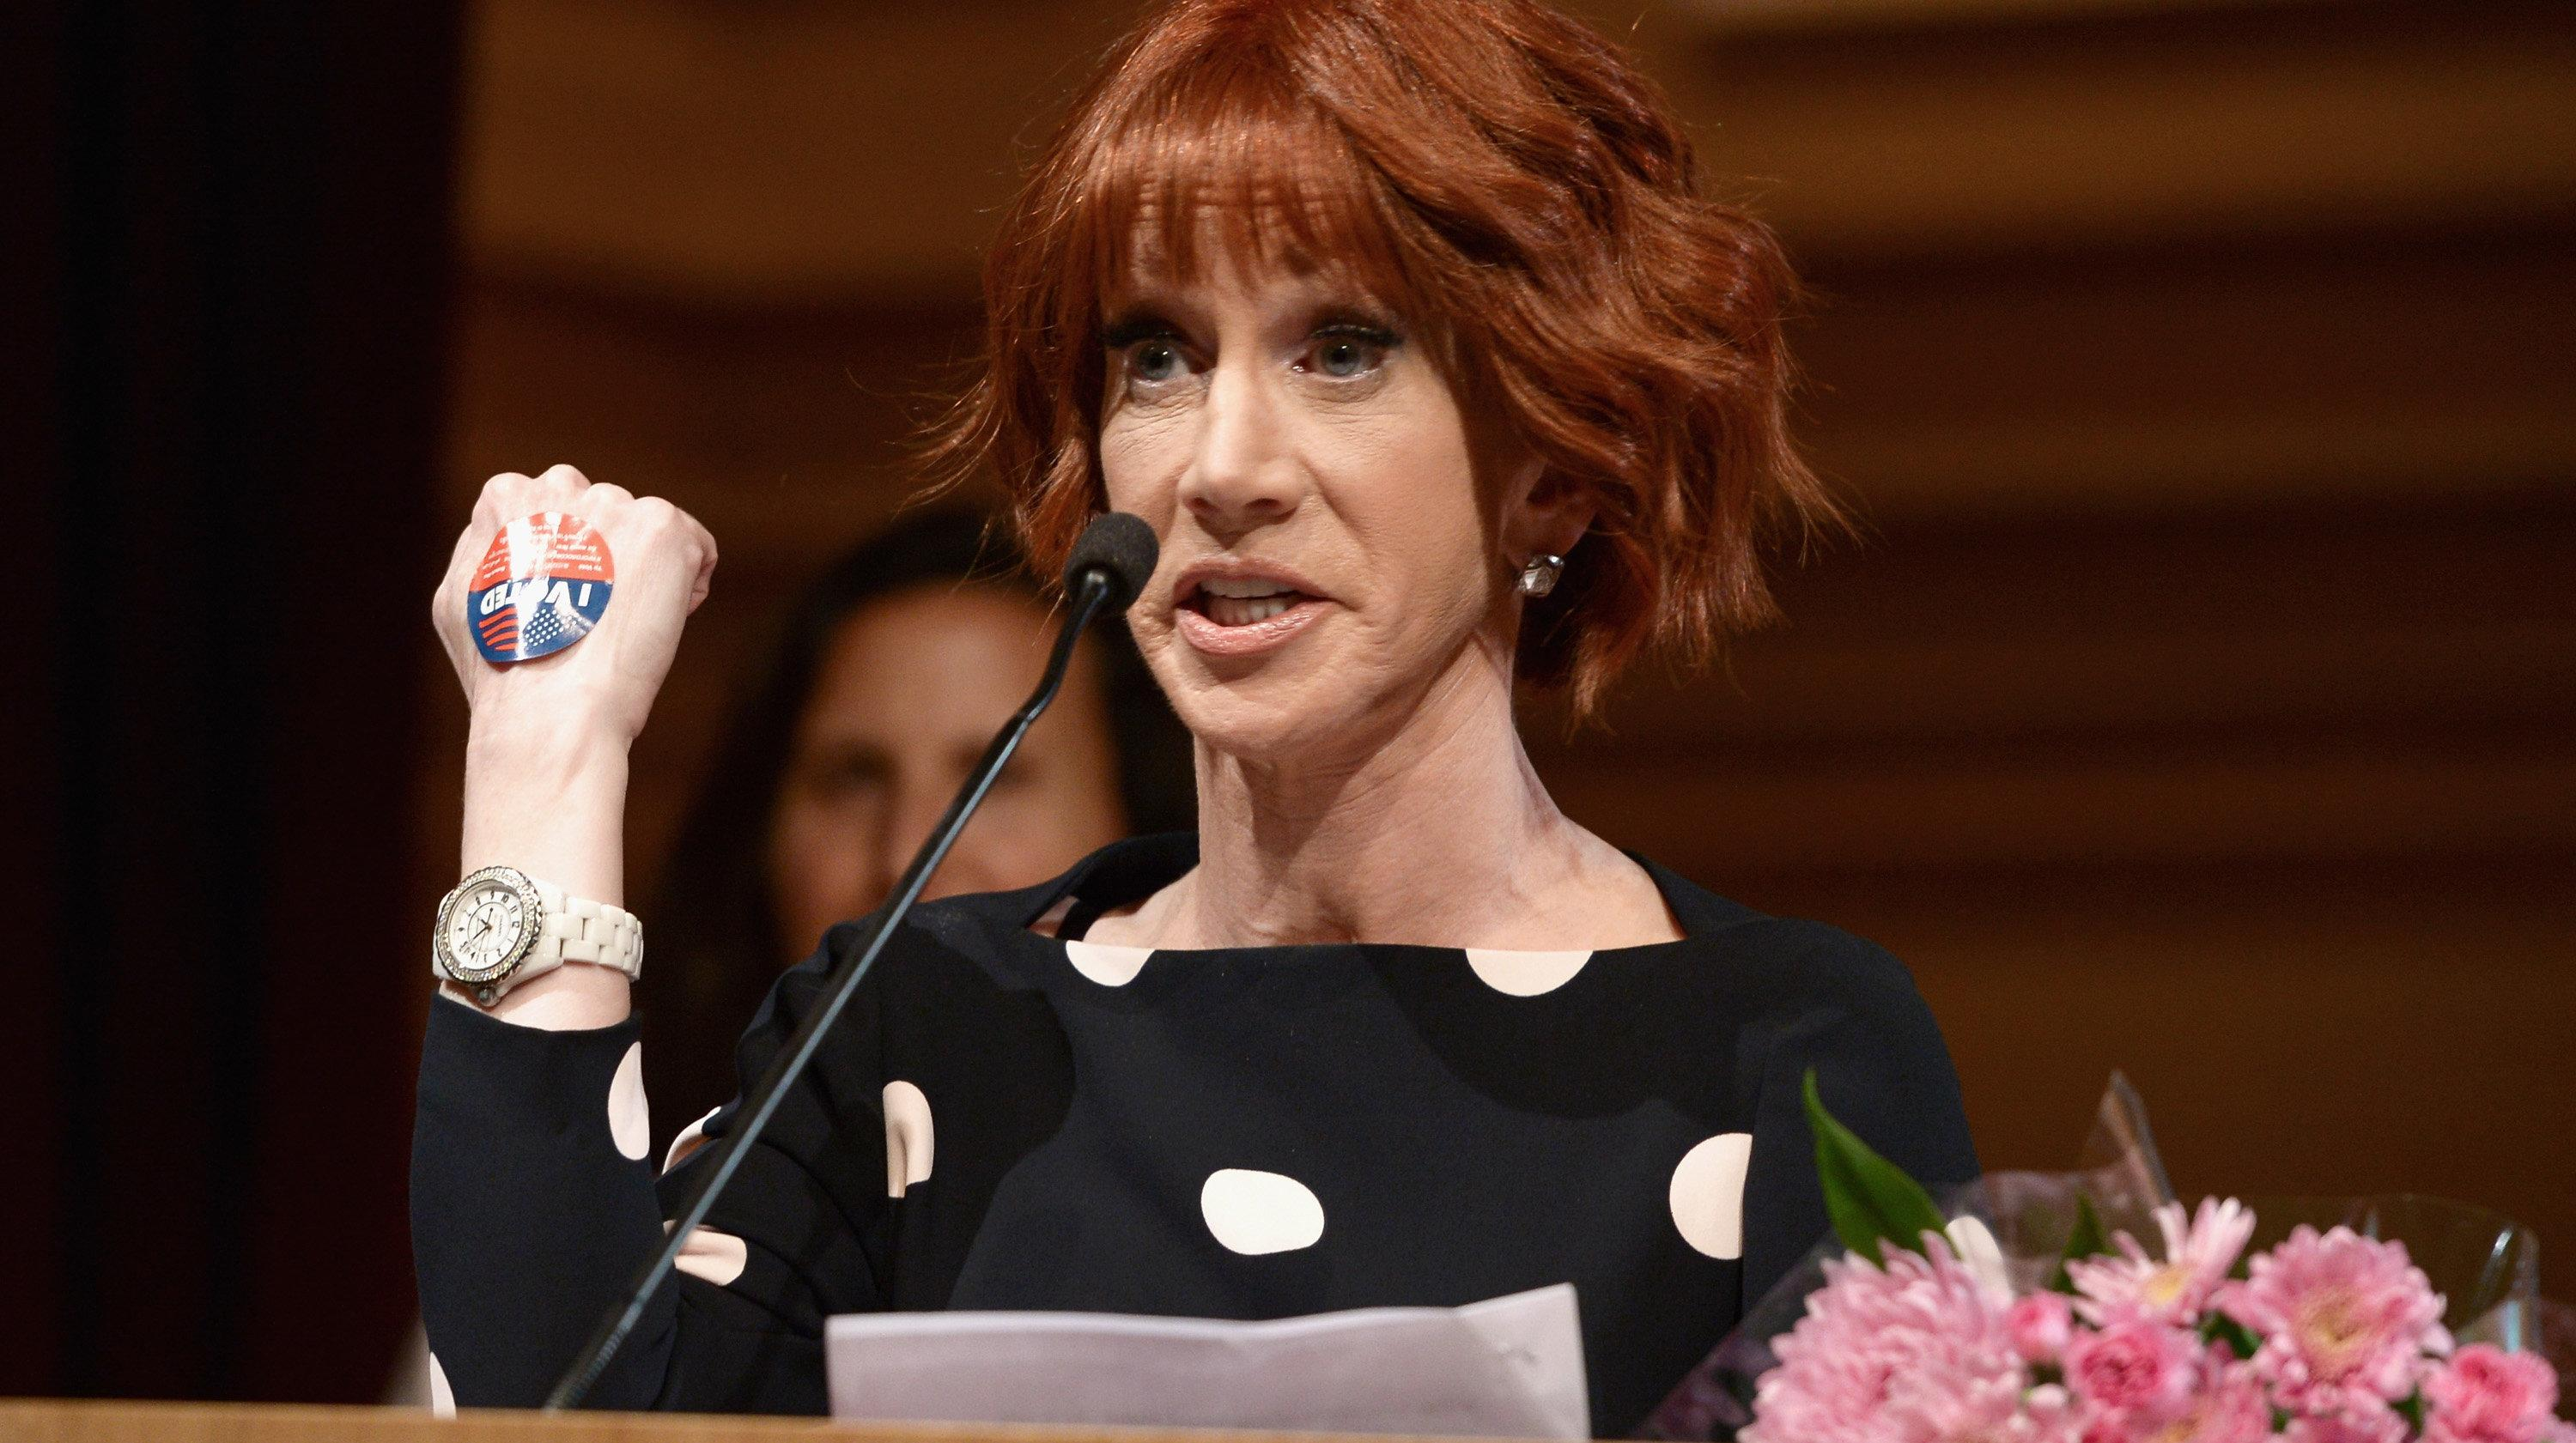 Kathy Griffin Says 'F**k You' To 'Feckless Piece Of S**t' Melania Trump